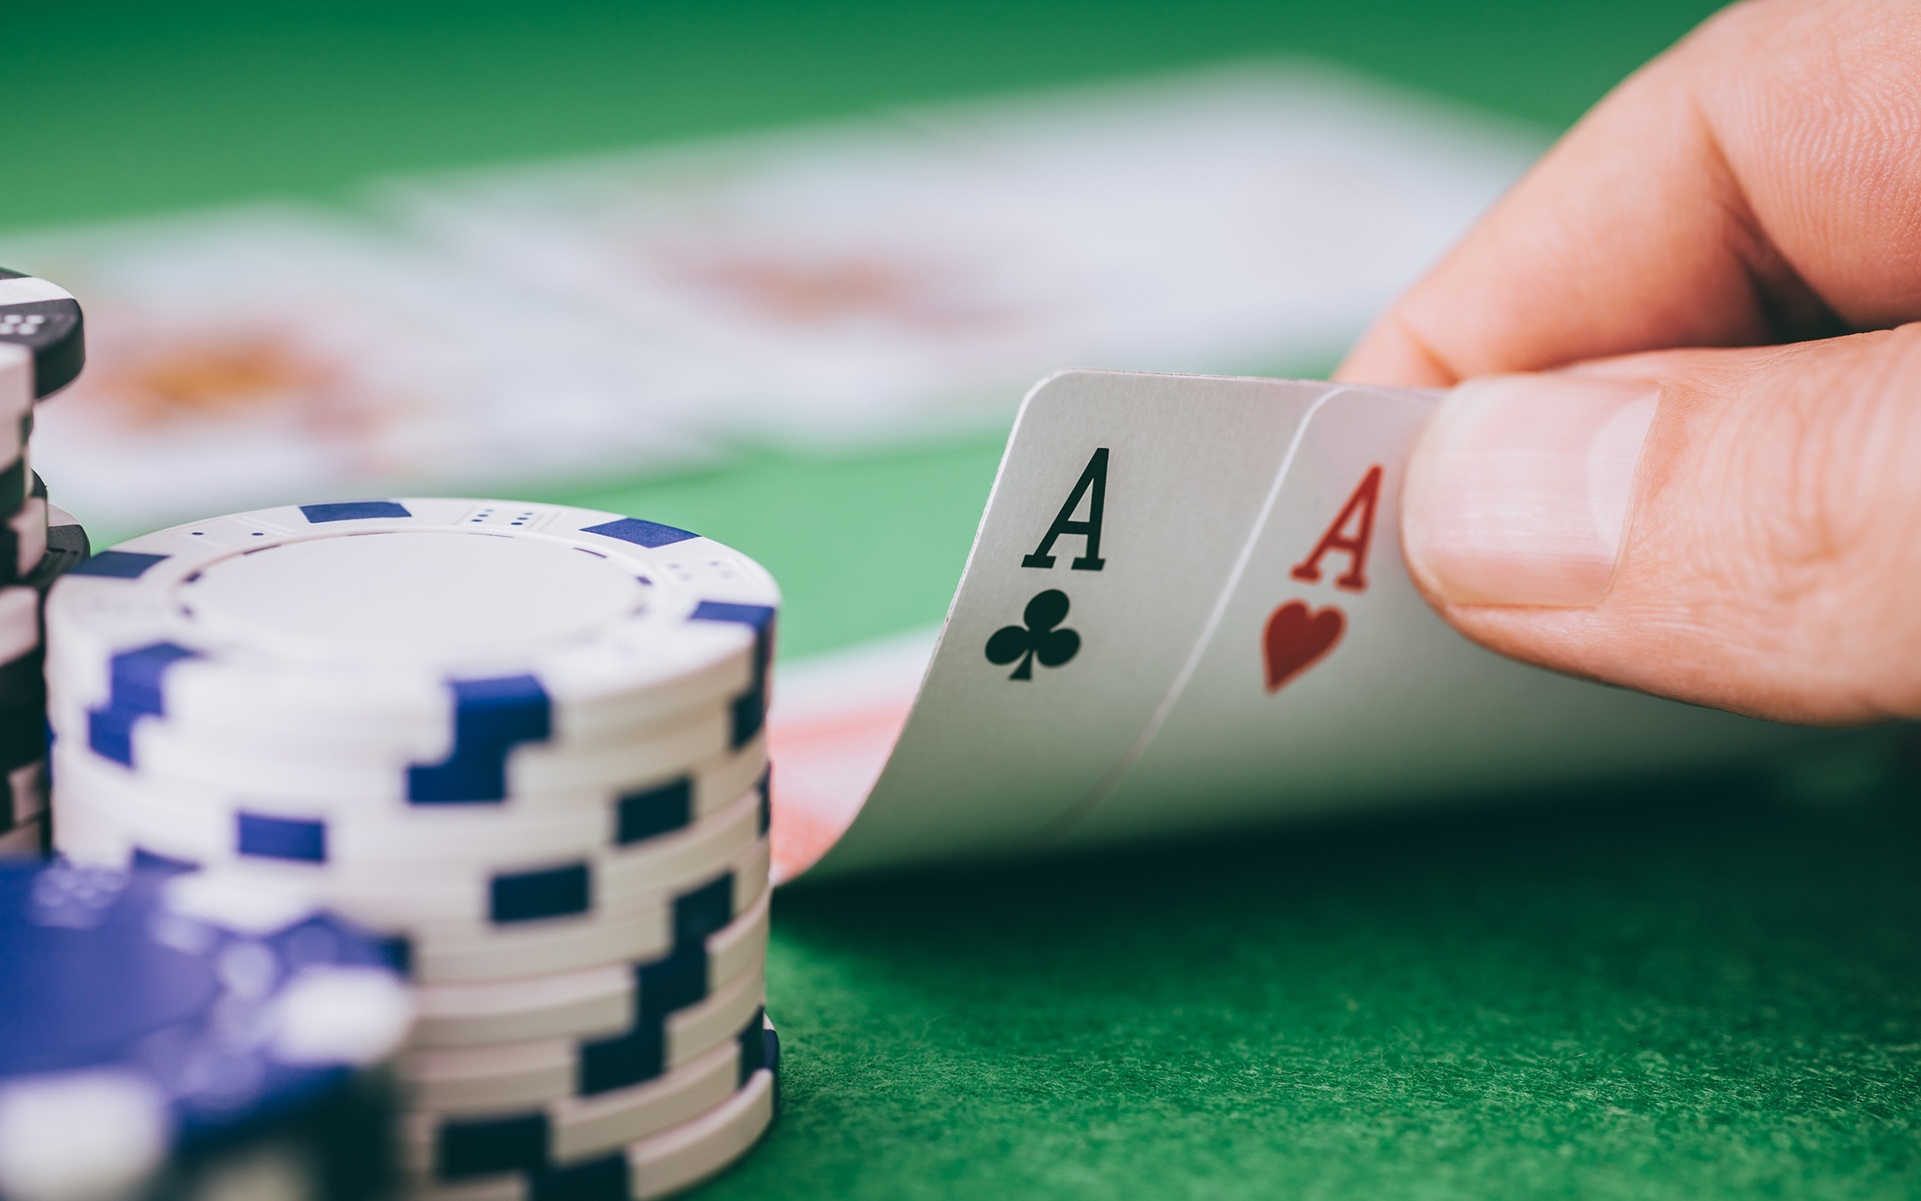 What things to keep in mind while playing suits poker online?